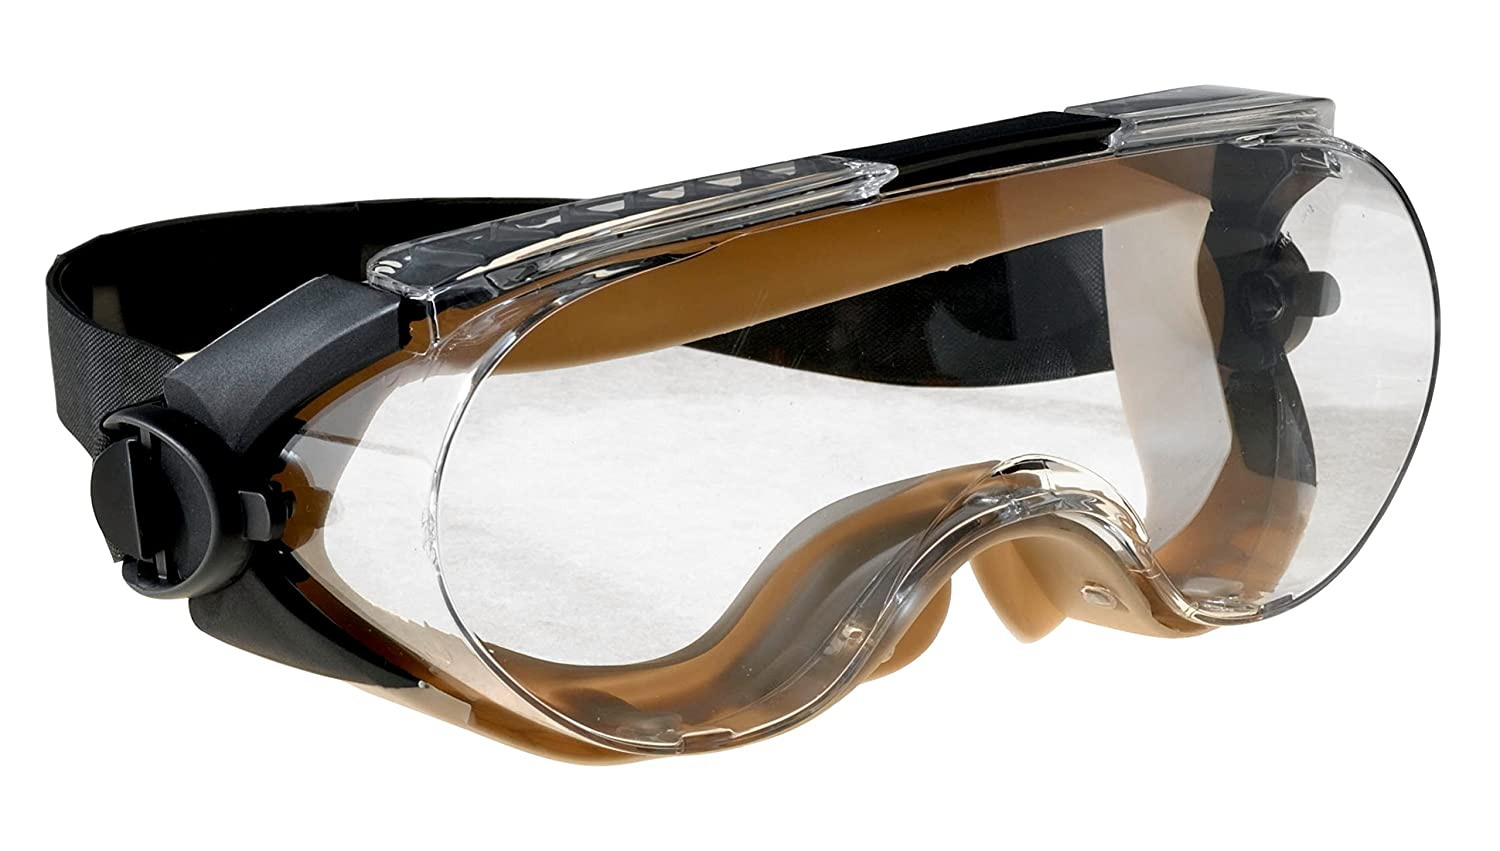 eye goggles  Amazon.com: 3M Maxim Safety Splash Goggle, 40671-00000-10 Over-the ...